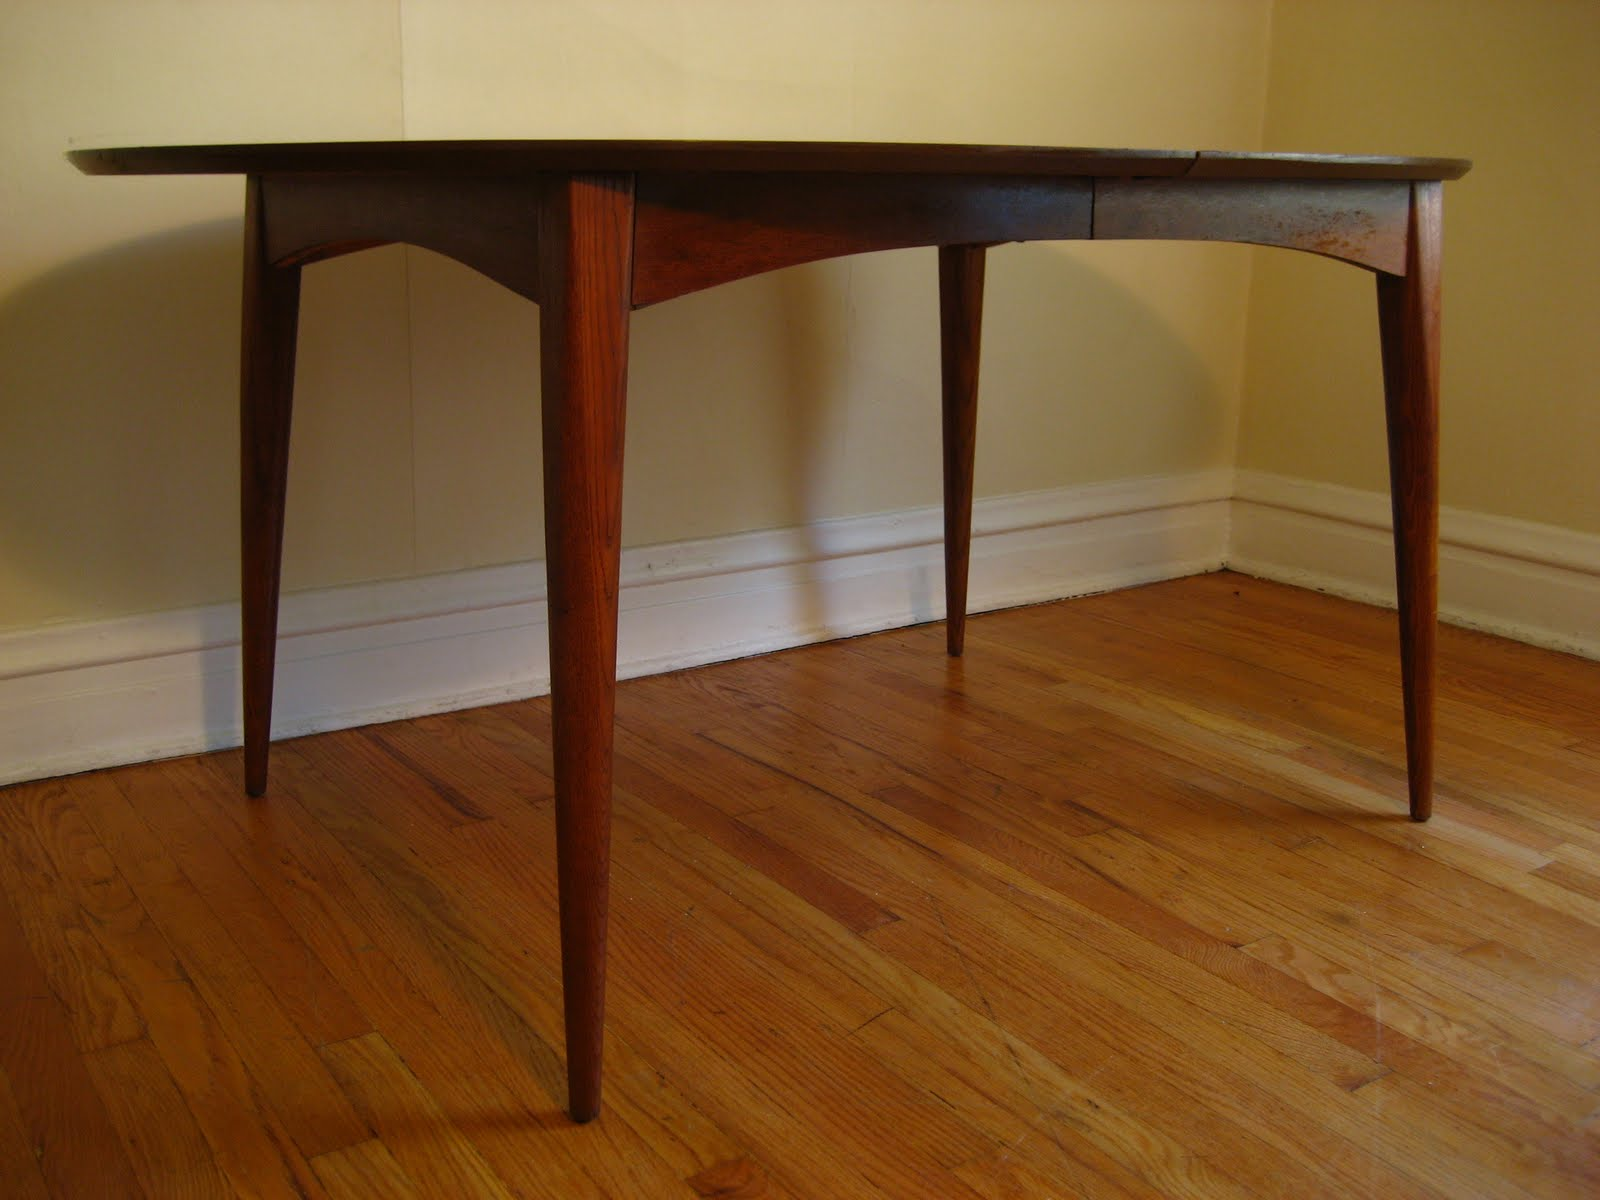 Mid century modern dining table with leaf - Mid Century Modern Dining Table Oval Shaped Dining Table With Internal Leaf System Arched Cross Bracing And Tapered Legs Highlight This Walnut Table